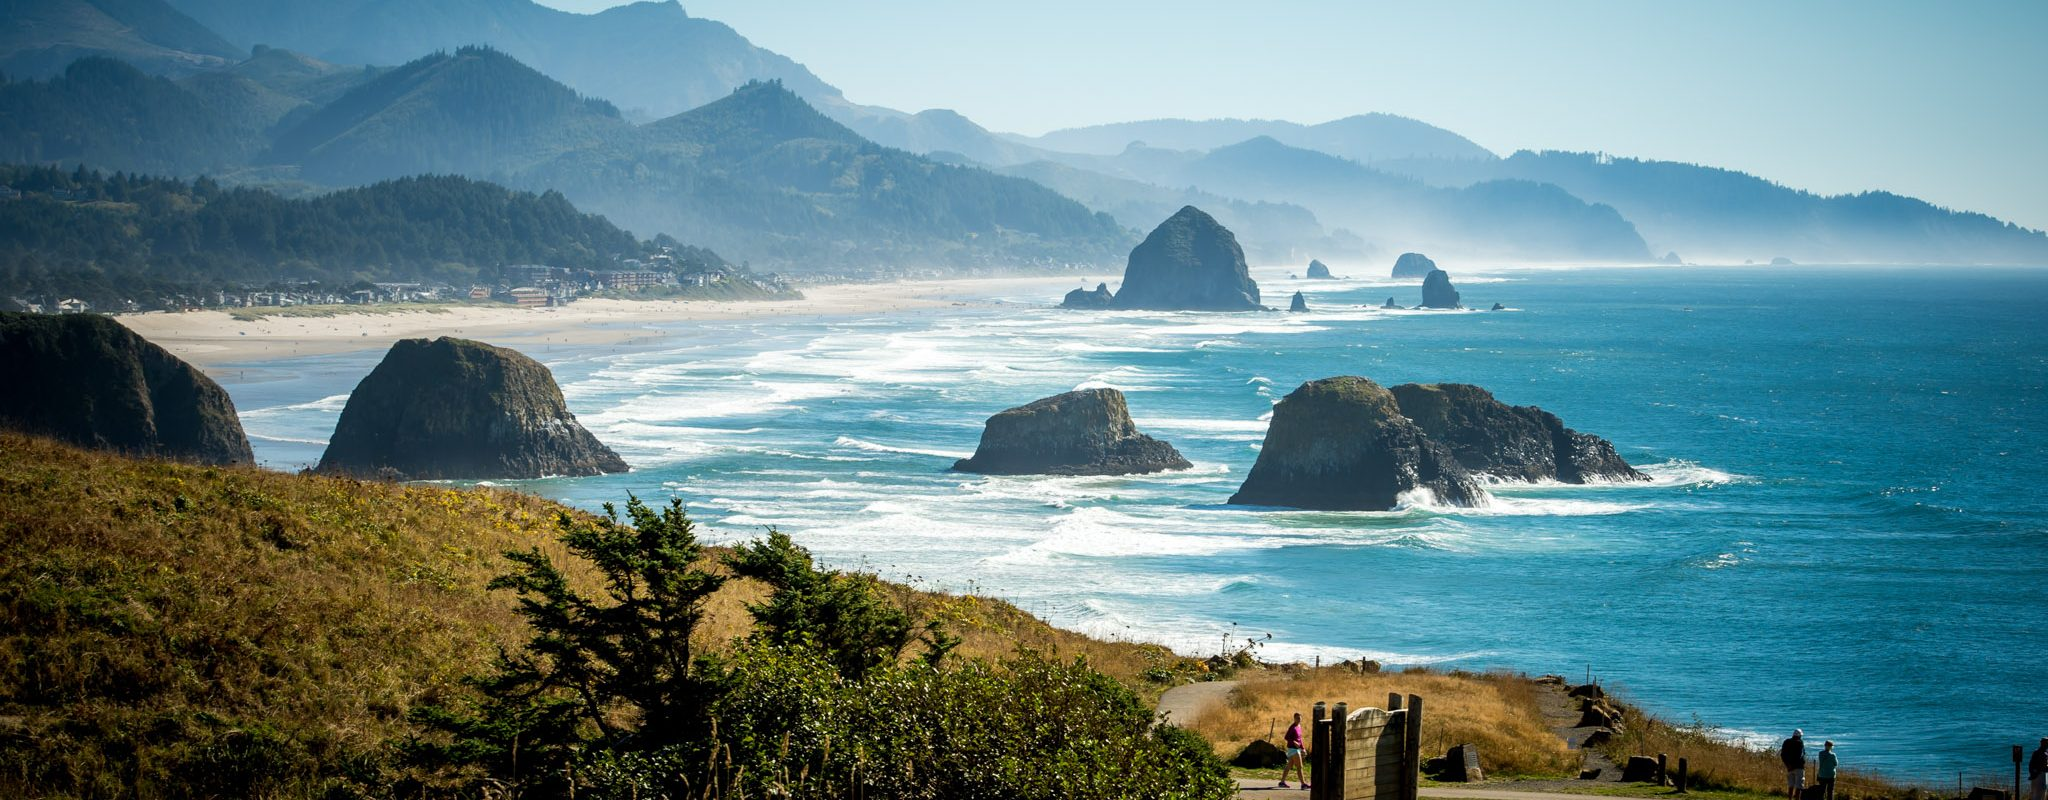 Cannon Beach Resort Map & Directions | Surfsand Resort on